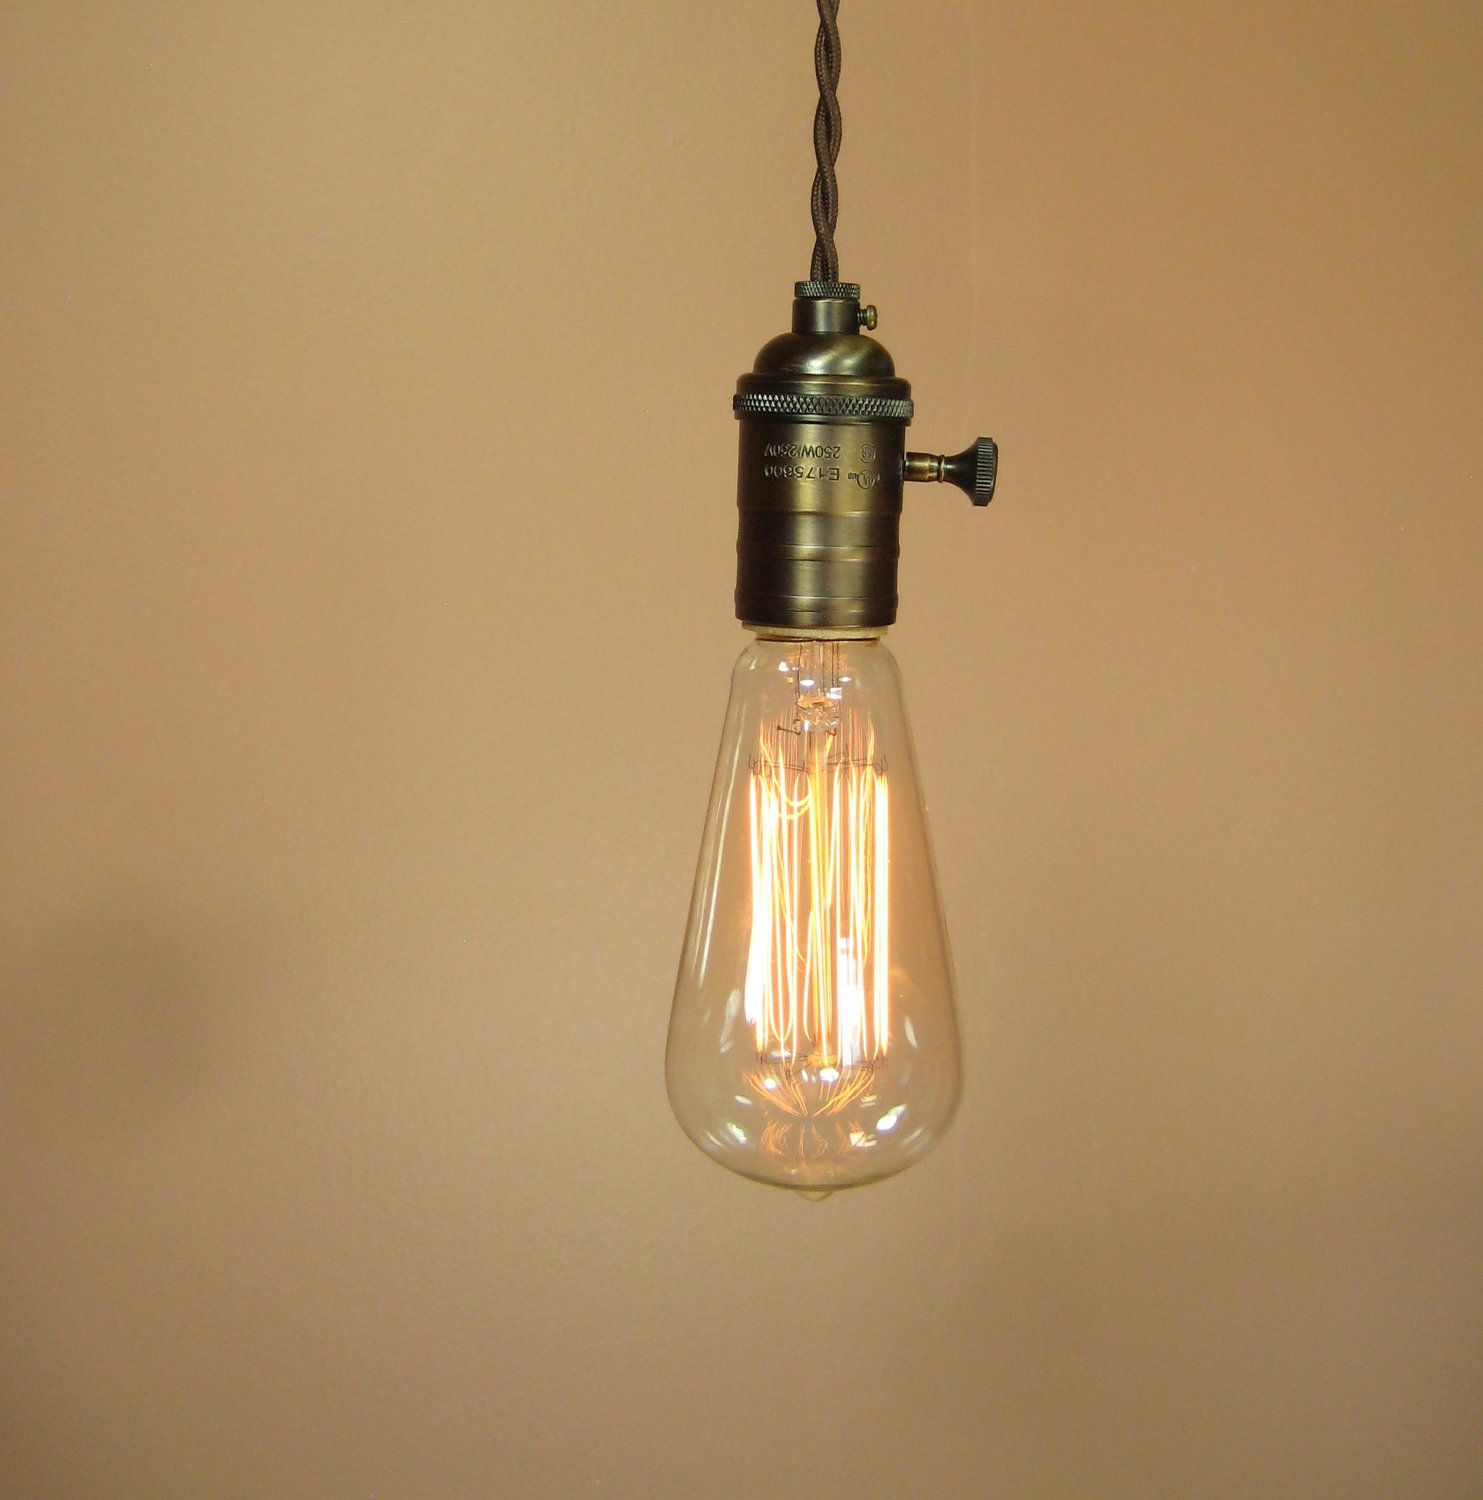 decorative and light bulb simple in pendant needs moment the is this a feature that available design pin keeping make bulbs of designed every where s to small choice bristol interior